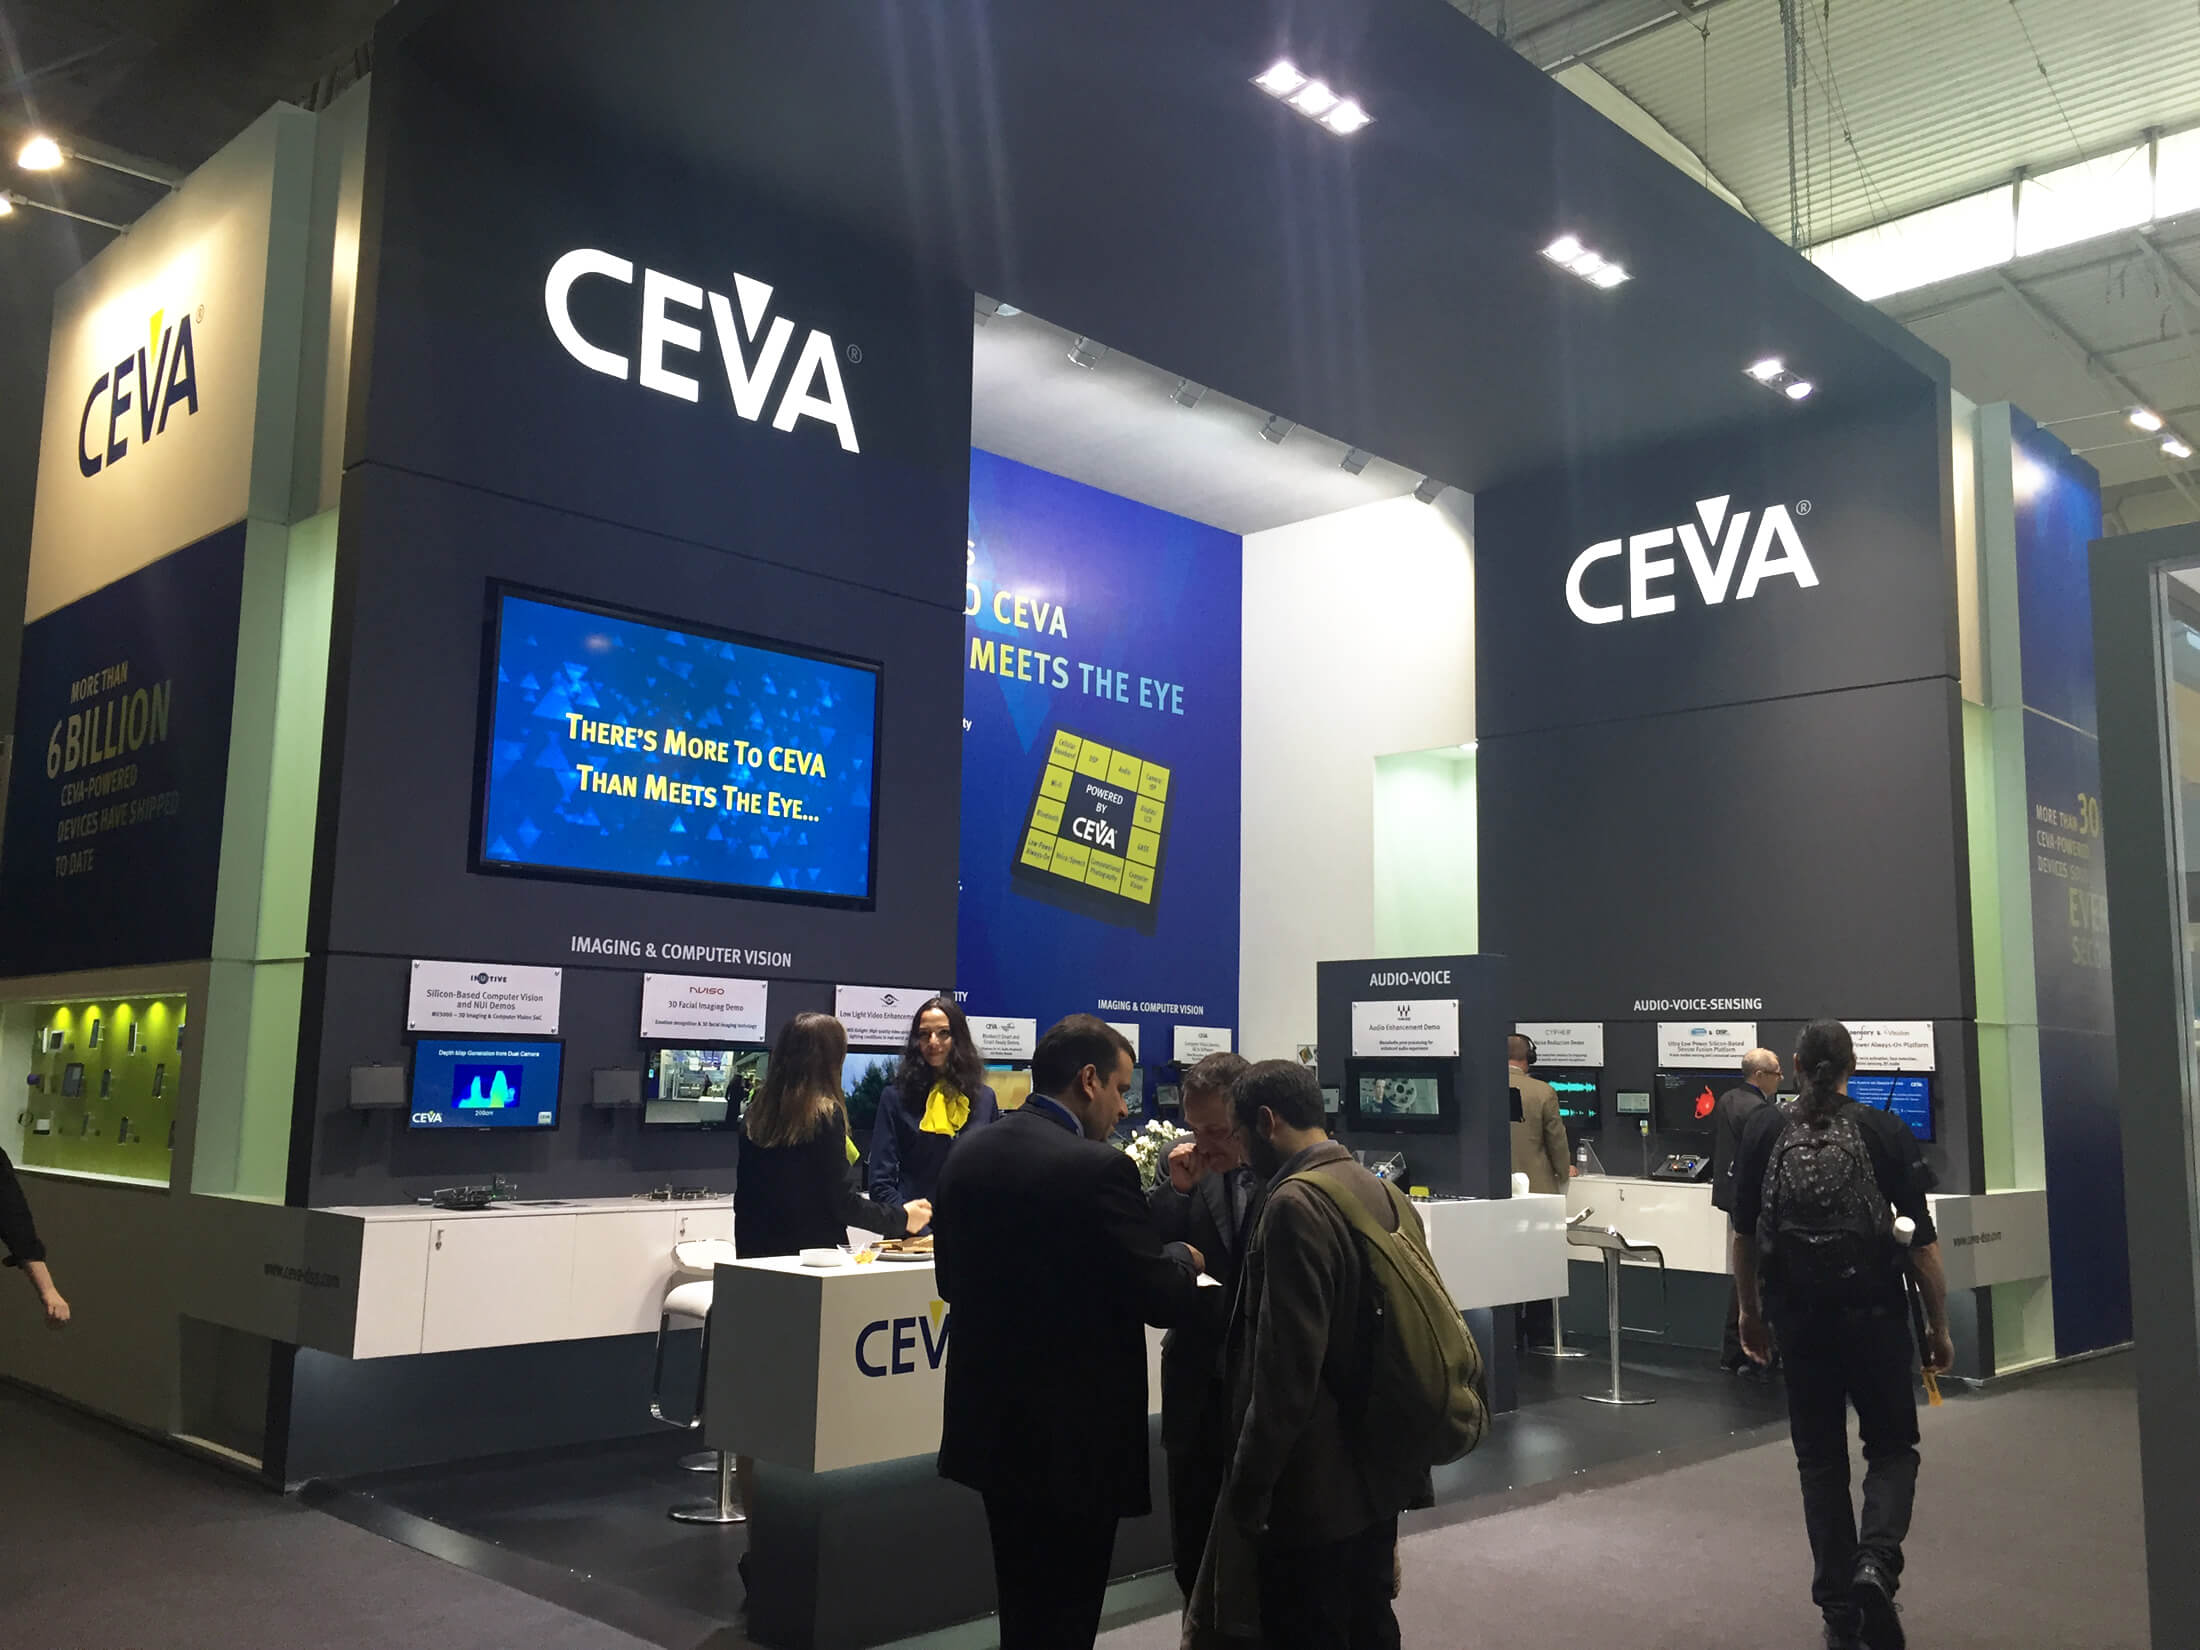 PPL Event Services Ltd Ceva Exhibition Stand